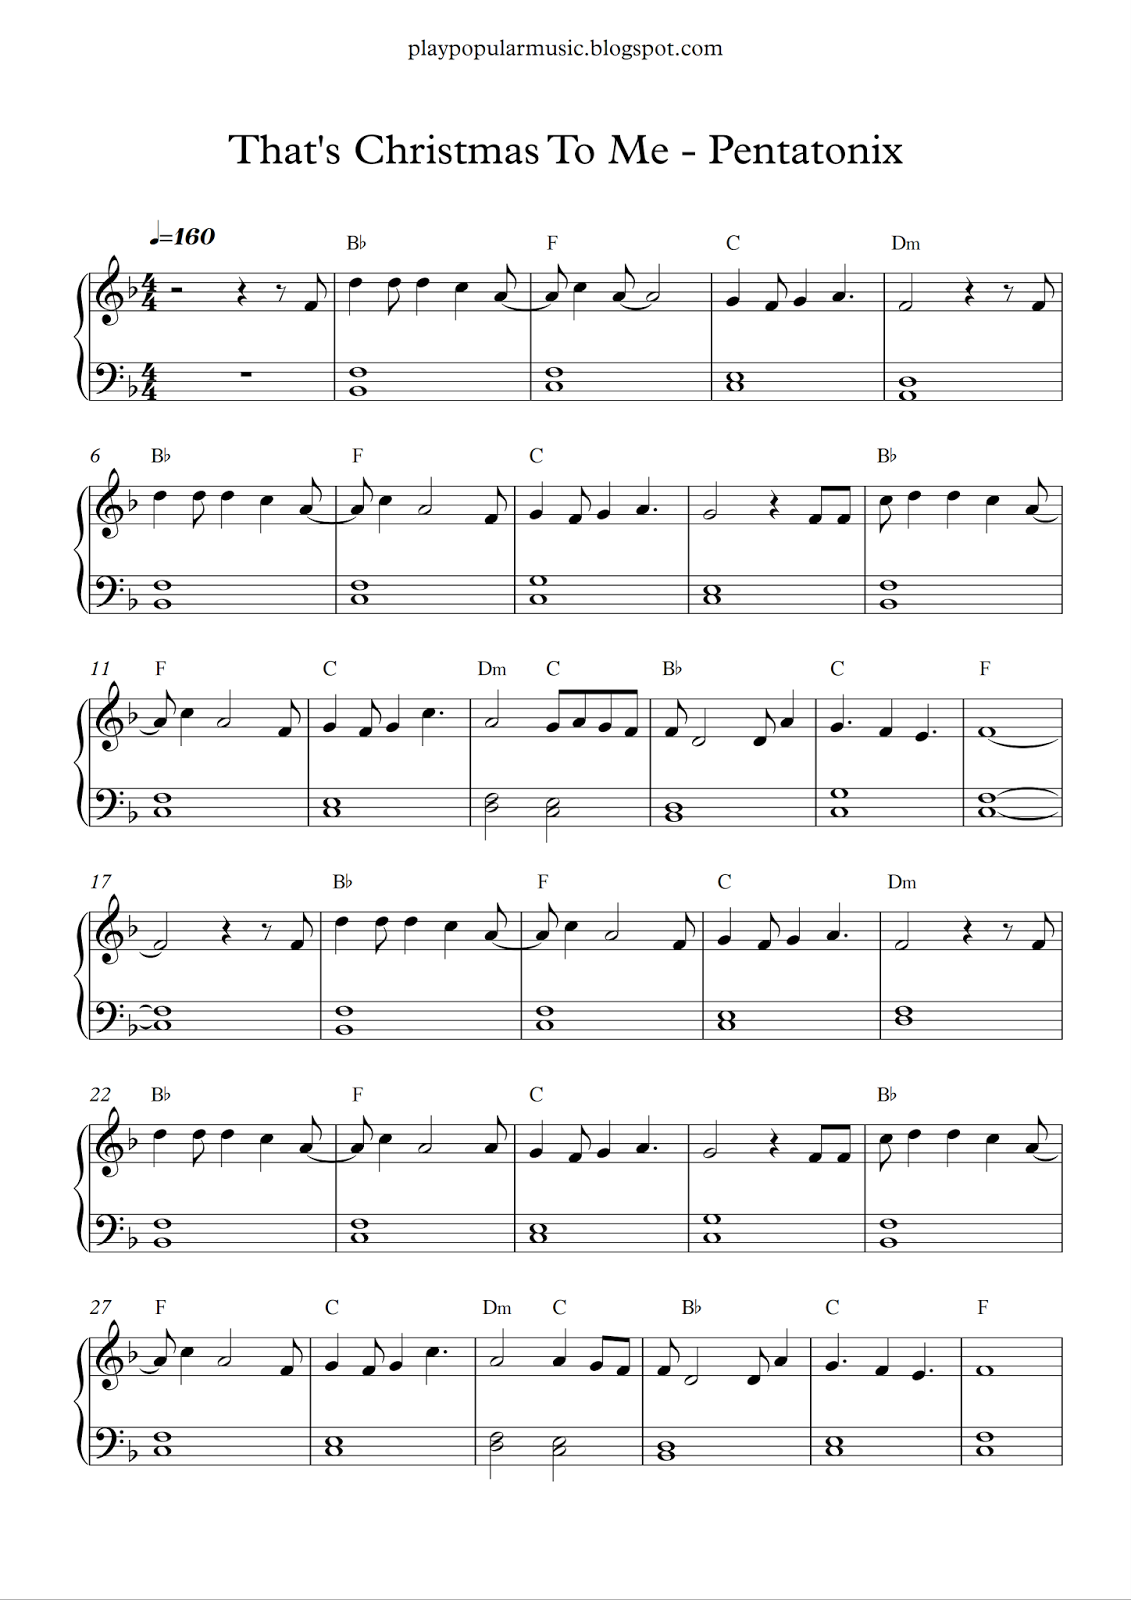 Free Piano Sheet Music That S Christmas To Me Pentatonix Pdf The Only Gift I Ll Ever Need Christmas Sheet Music Piano Sheet Music Free Easy Piano Sheet Music